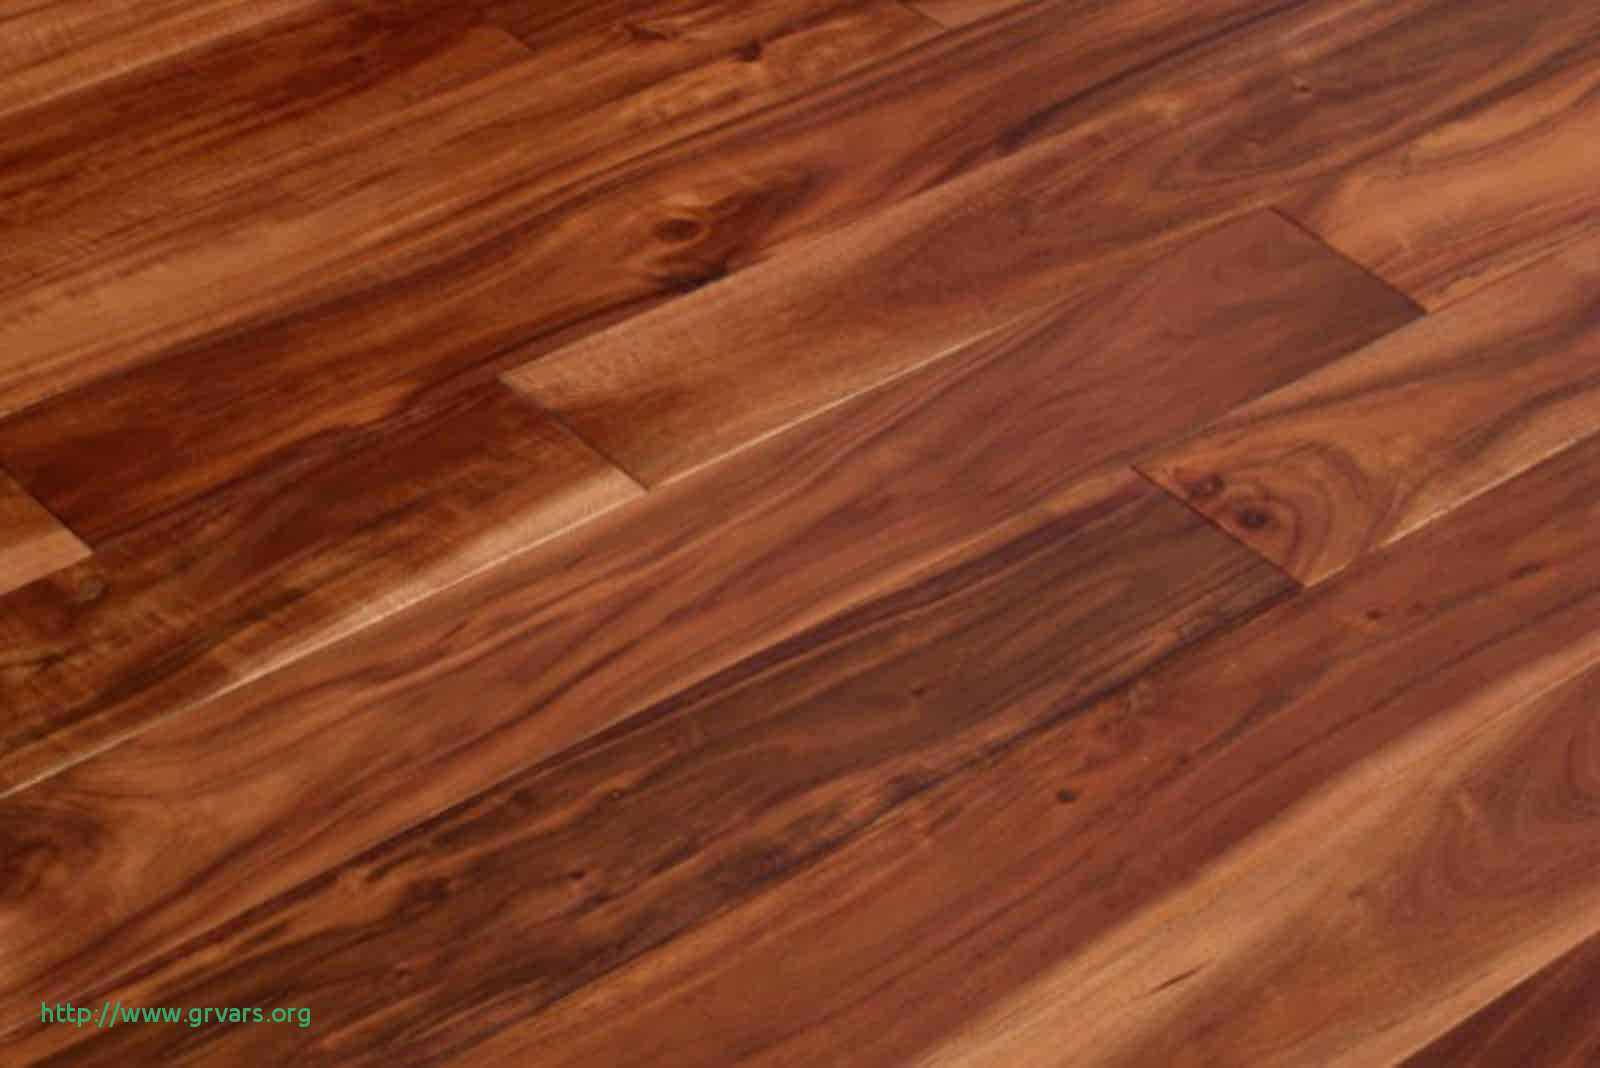 can you clean hardwood floors with vinegar and water of 21 luxe how to clean prefinished hardwood floors with vinegar intended for clean hardwood floors with vinegar and water podemosleganes